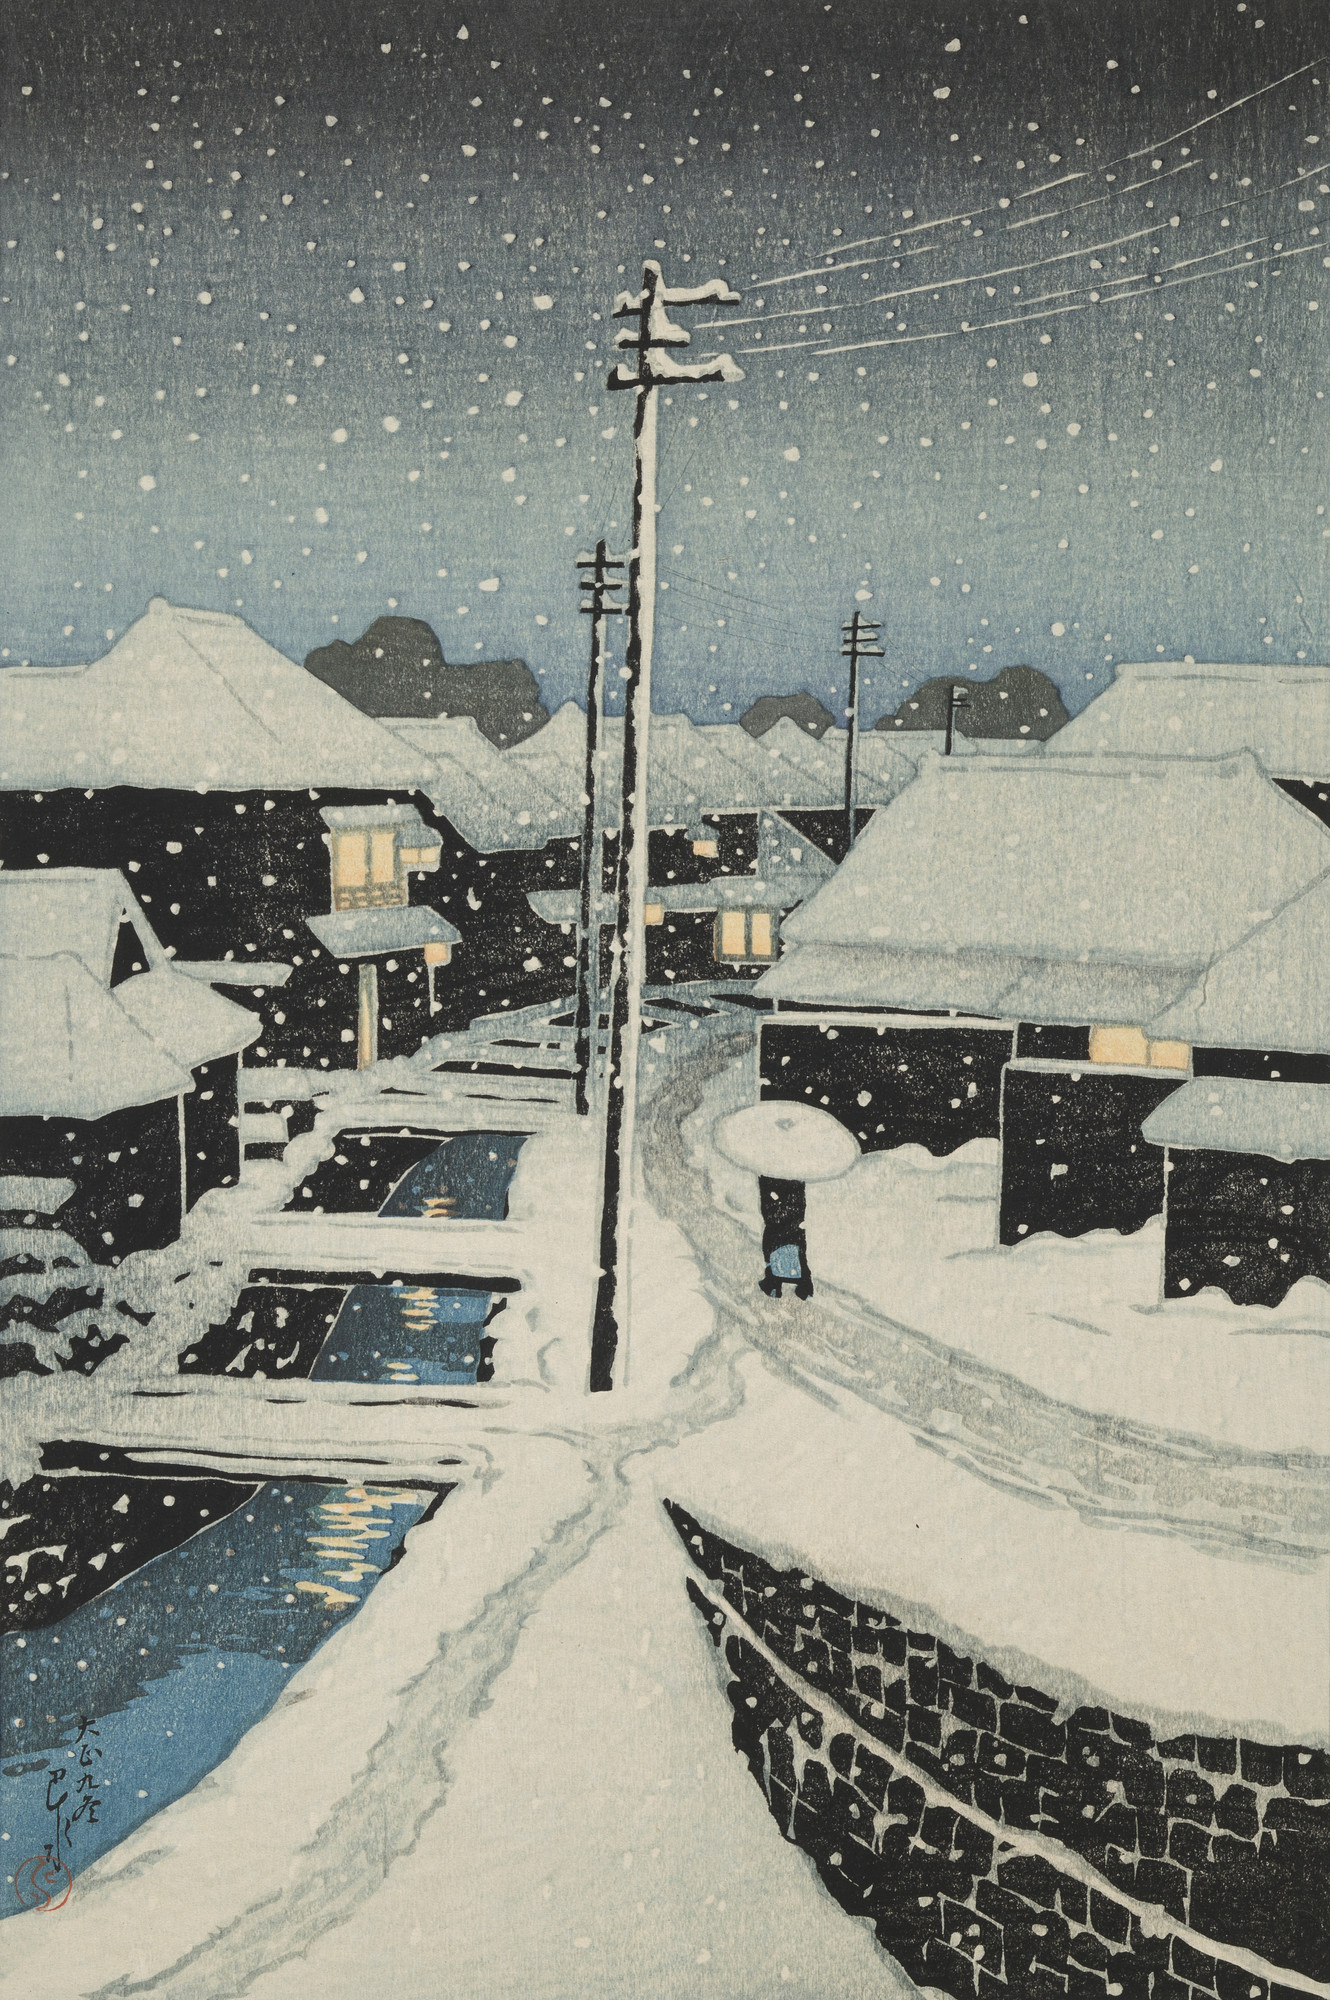 File:Evening Snow at Terashima Village.jpg - Wikimedia Commons